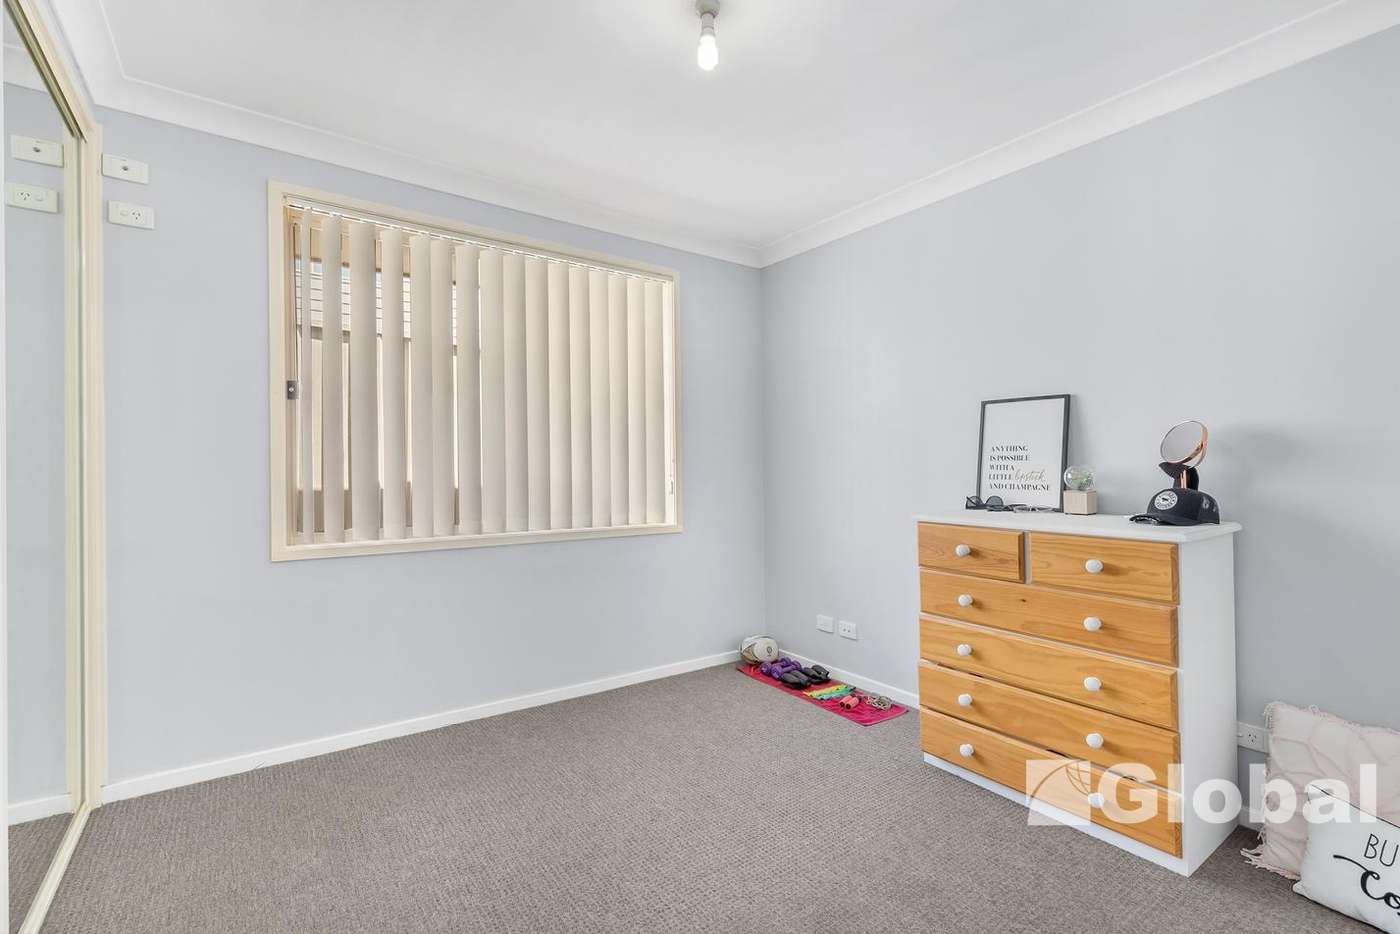 Sixth view of Homely villa listing, 5/3 Lovell Parade, Shortland NSW 2307